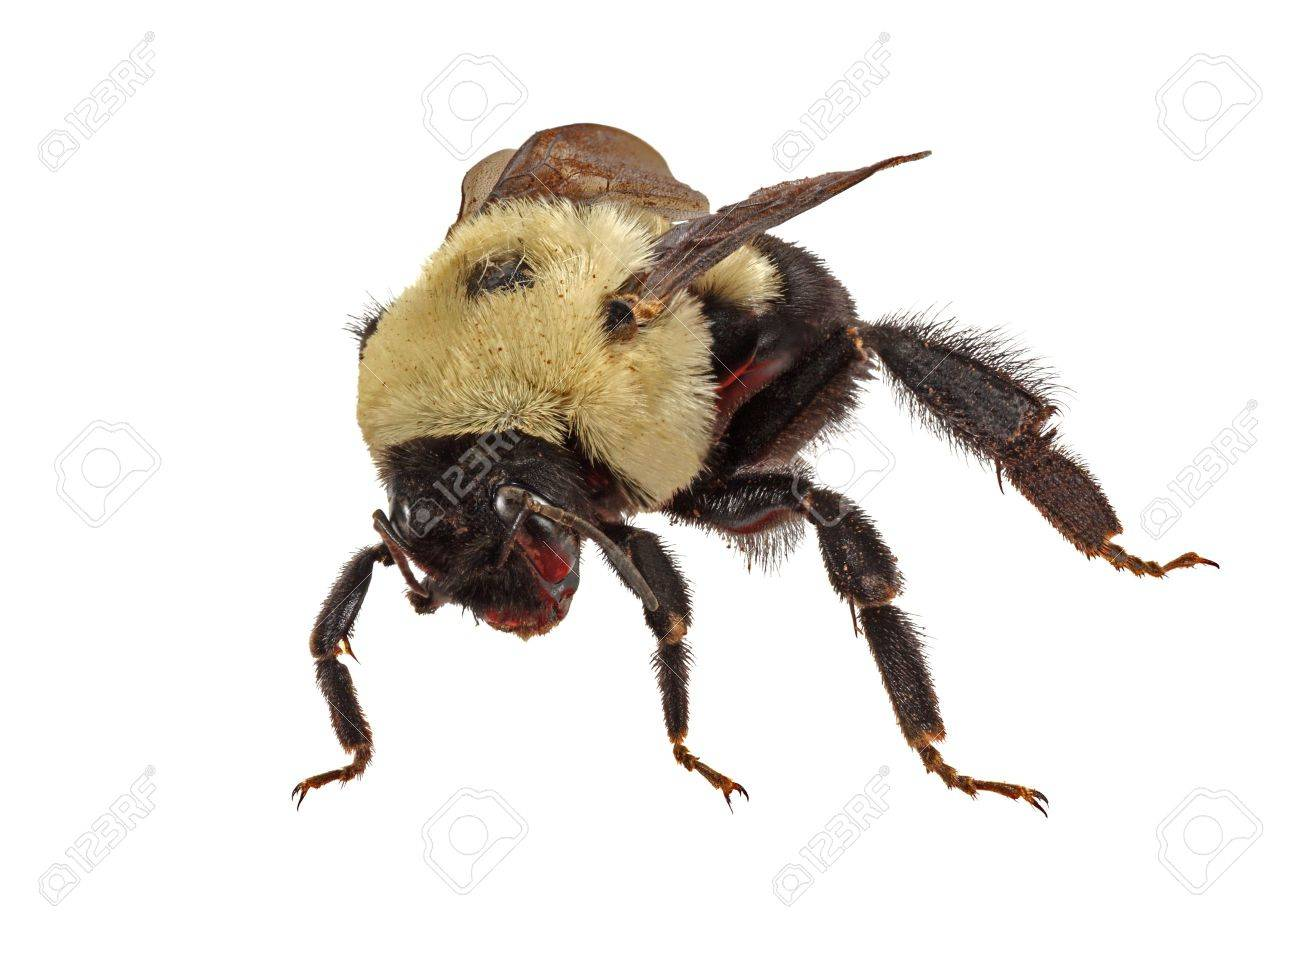 common eastern bumble bee bombus impatiens isolated on white